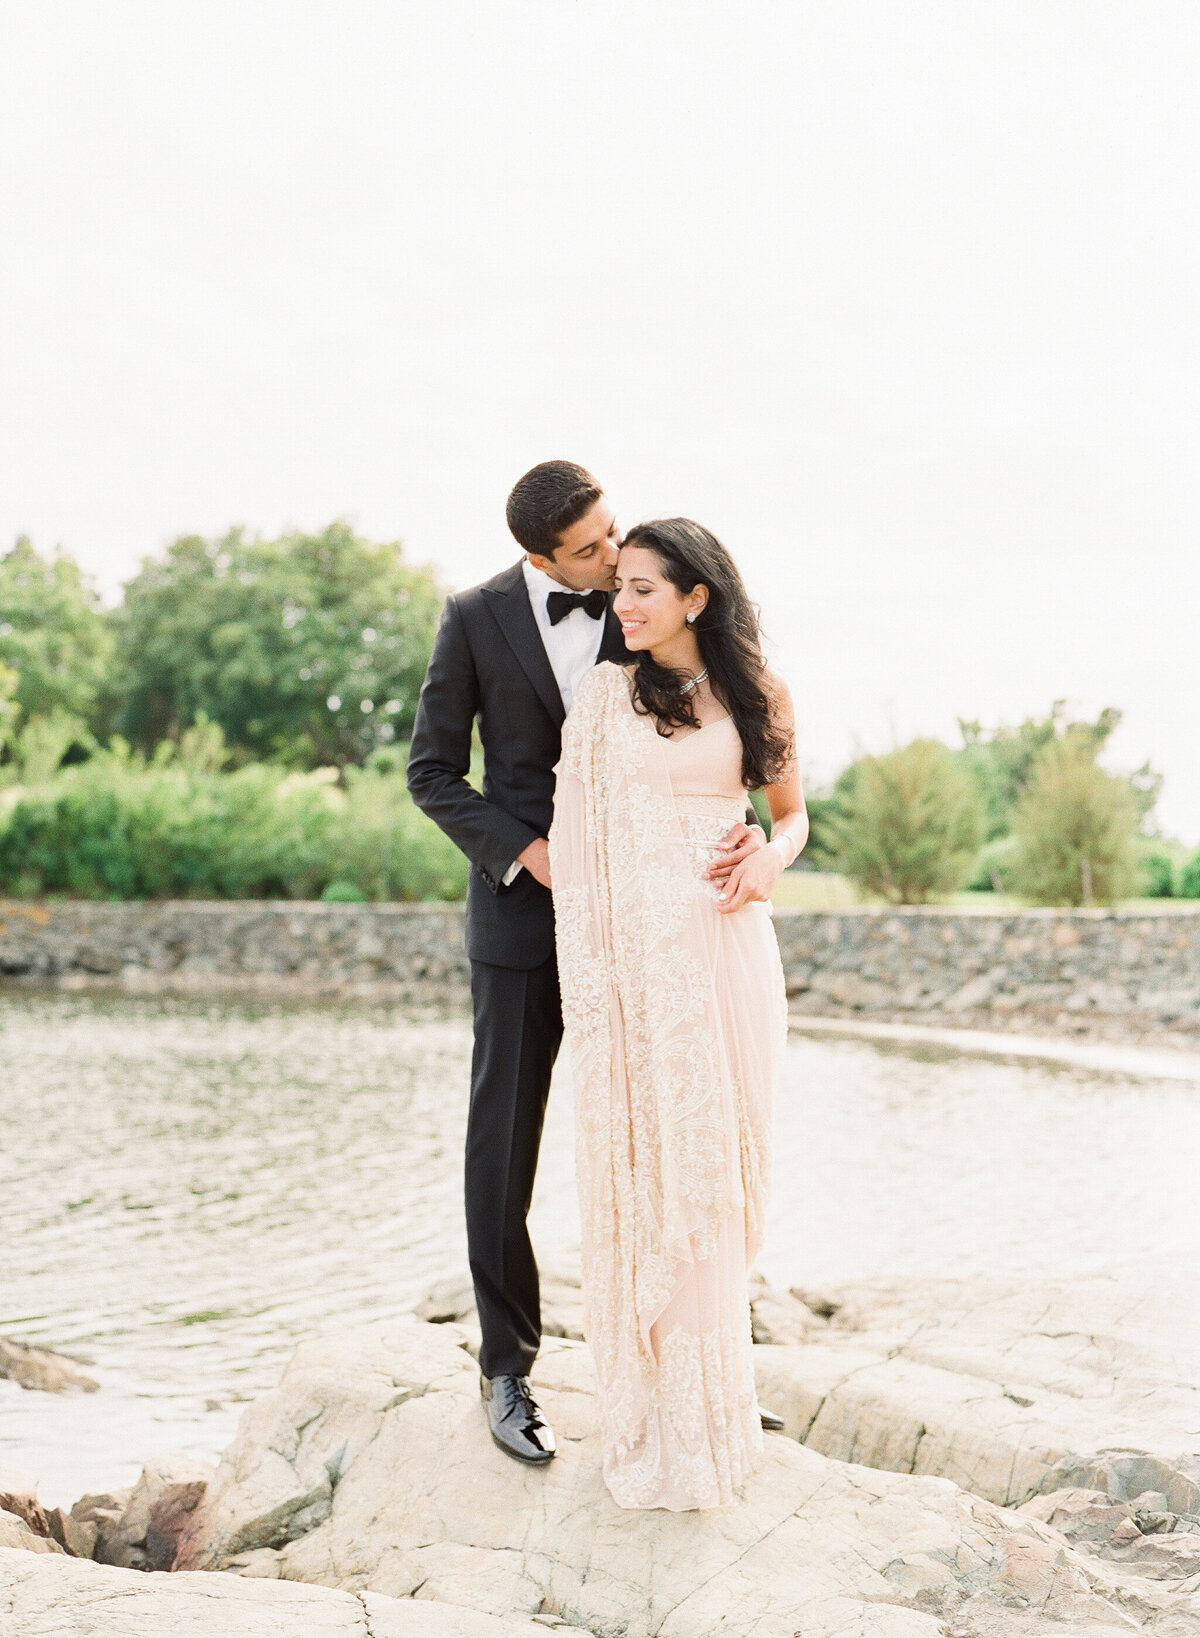 547 TWAH-DOUGHERTY-BELLE-MER-RHODE-ISLAND-WEDDING